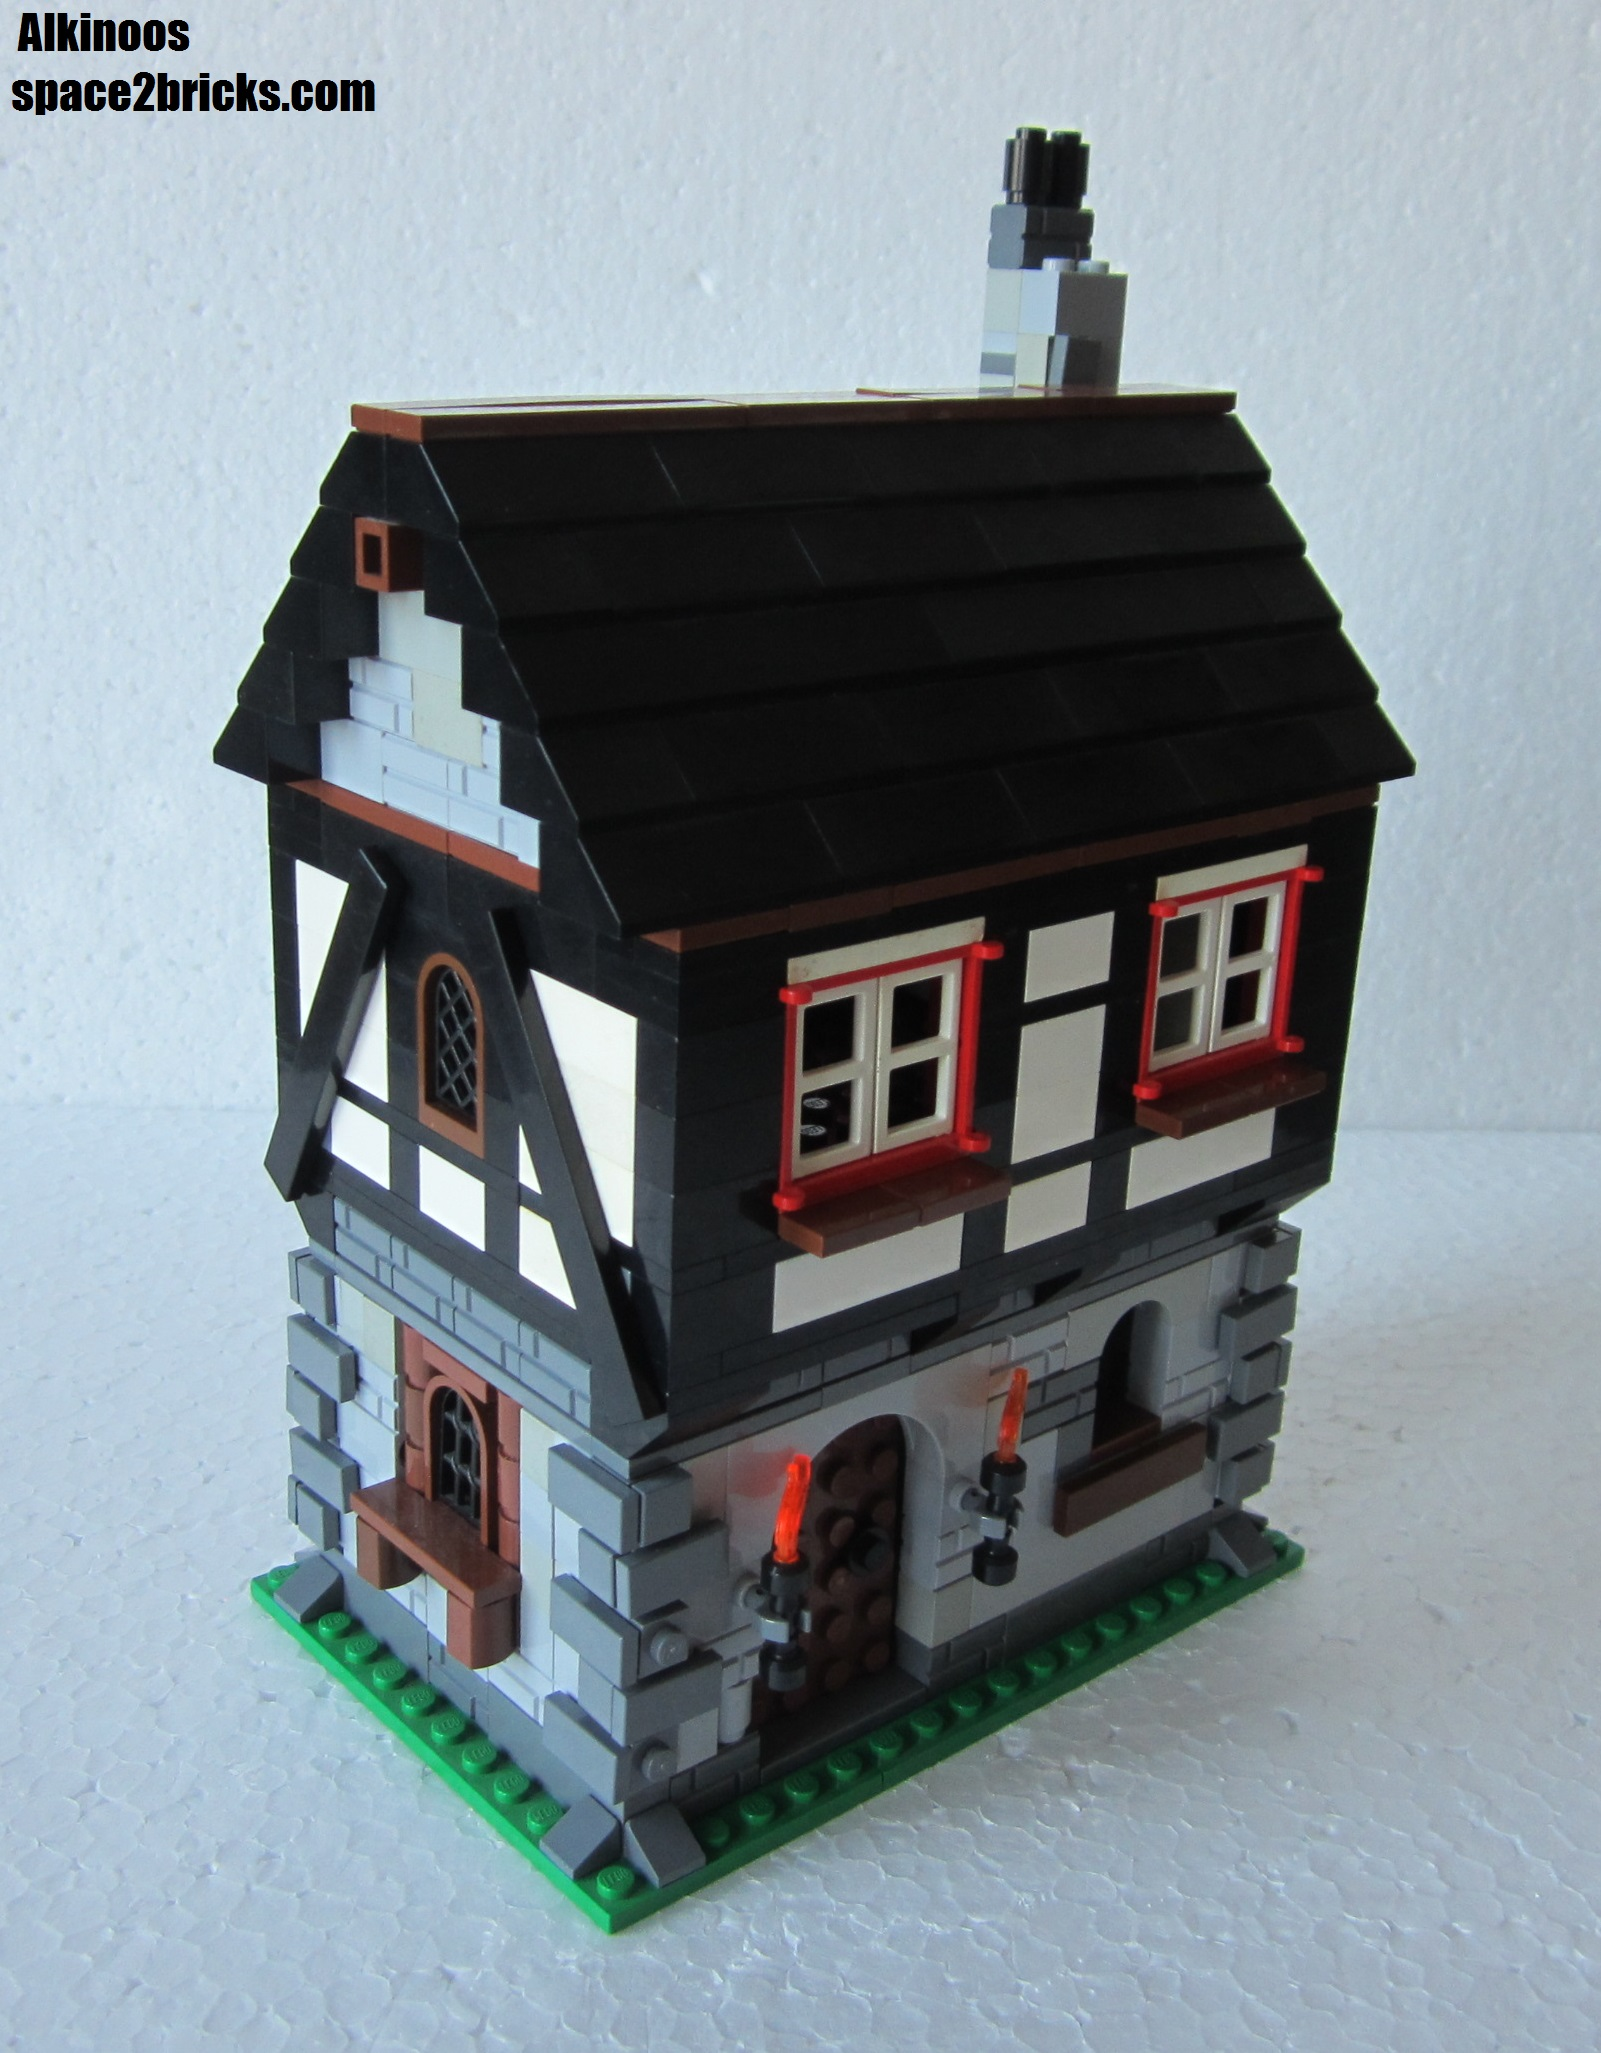 moc kaamelott la petite maison s agrandit lego r by alkinoos. Black Bedroom Furniture Sets. Home Design Ideas